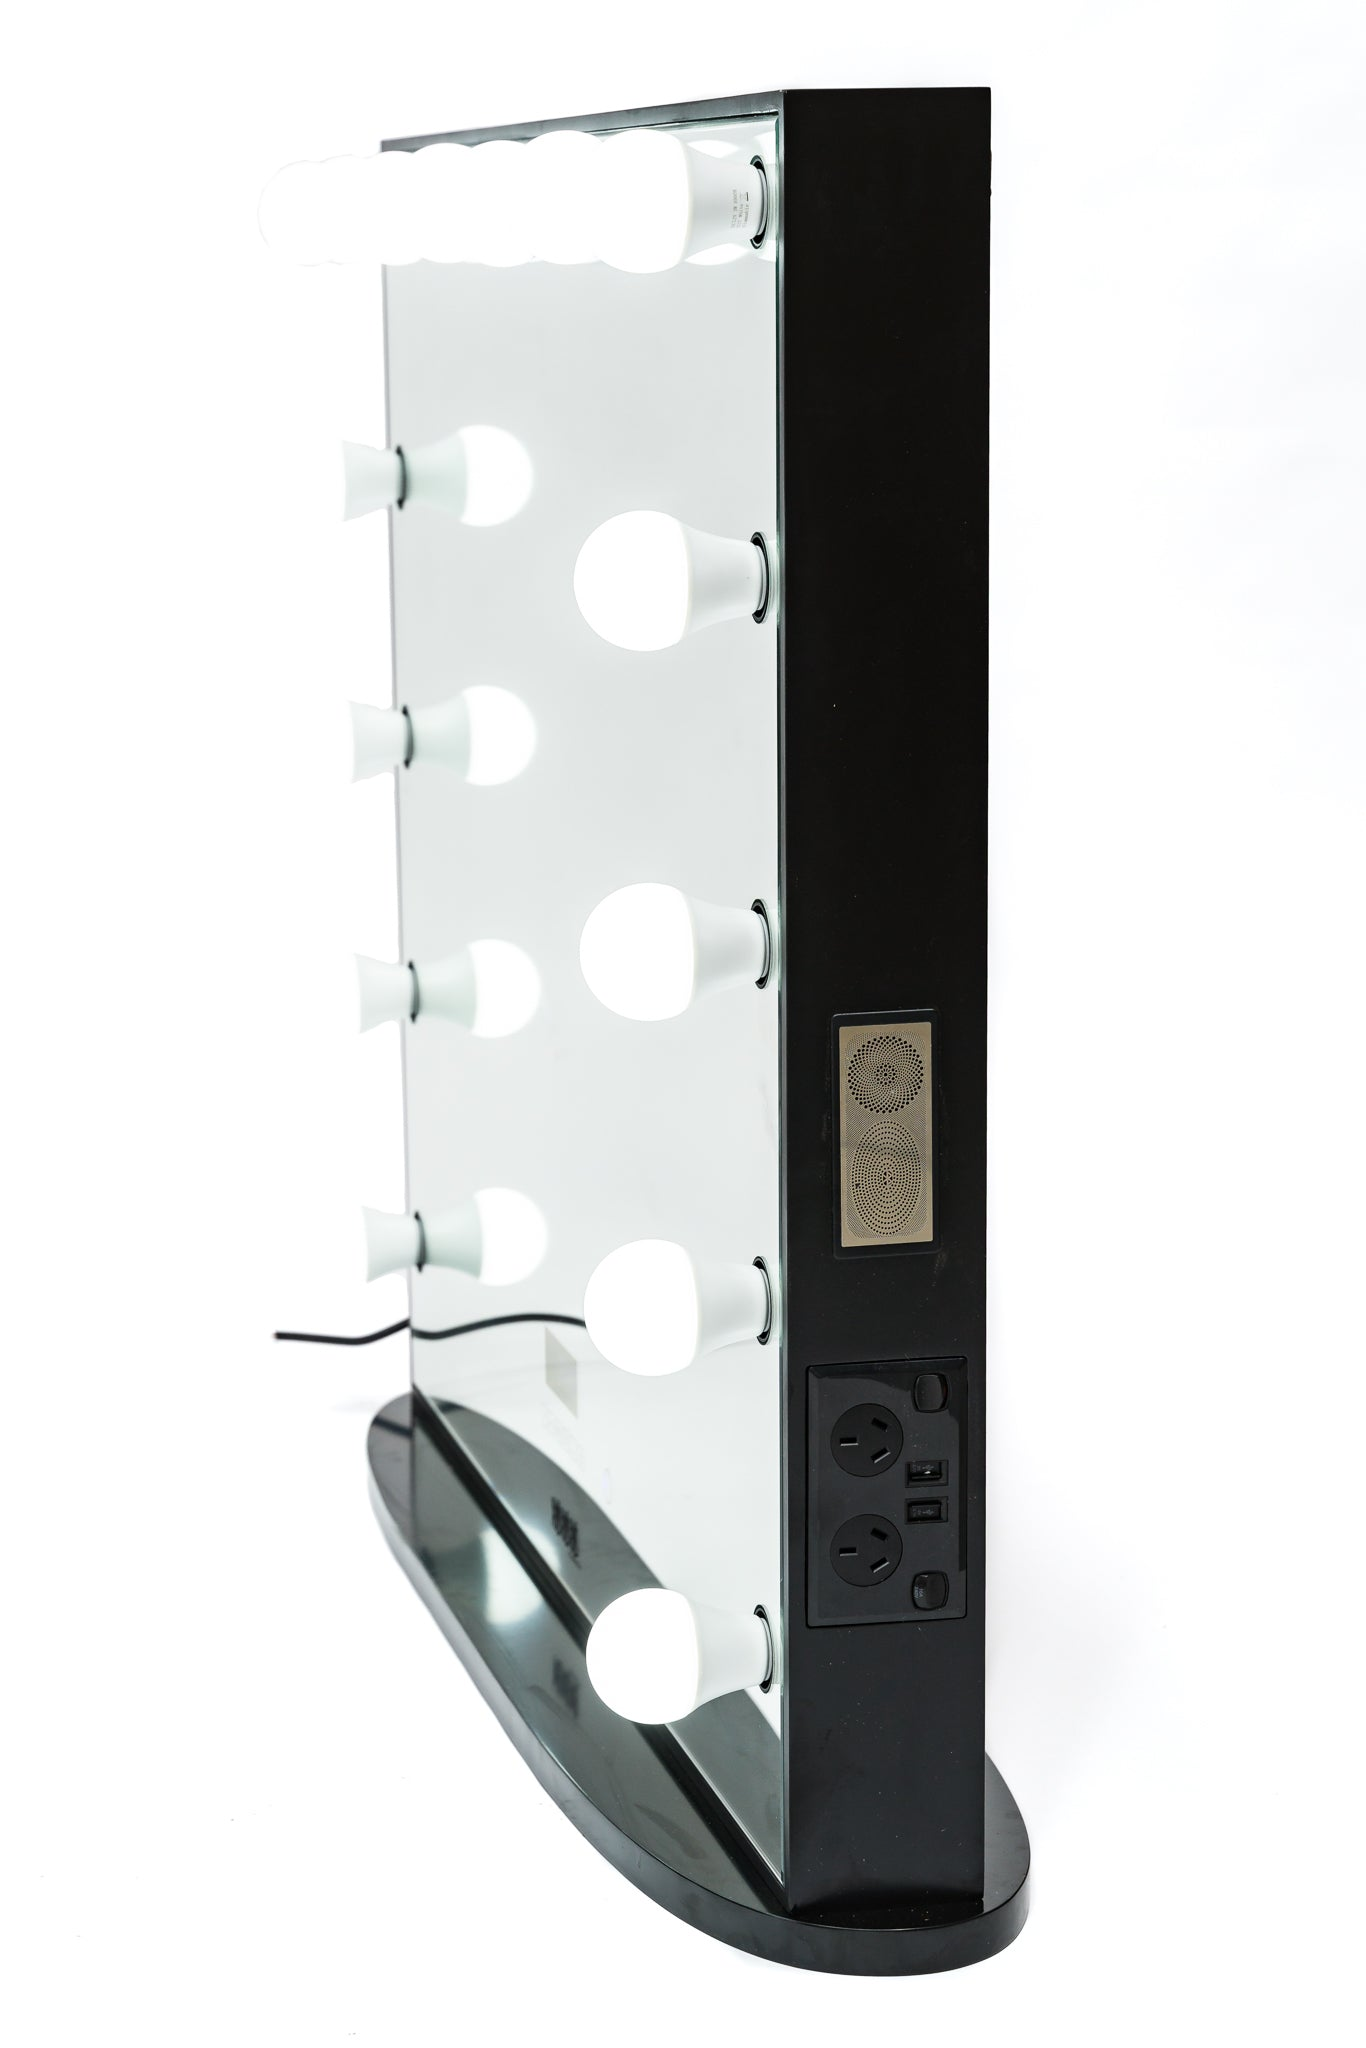 Hollywood Mirror Black HUGE SIZE XXXL with Bluetooth Speakers, Sensor Dimmer, USB,Power Points